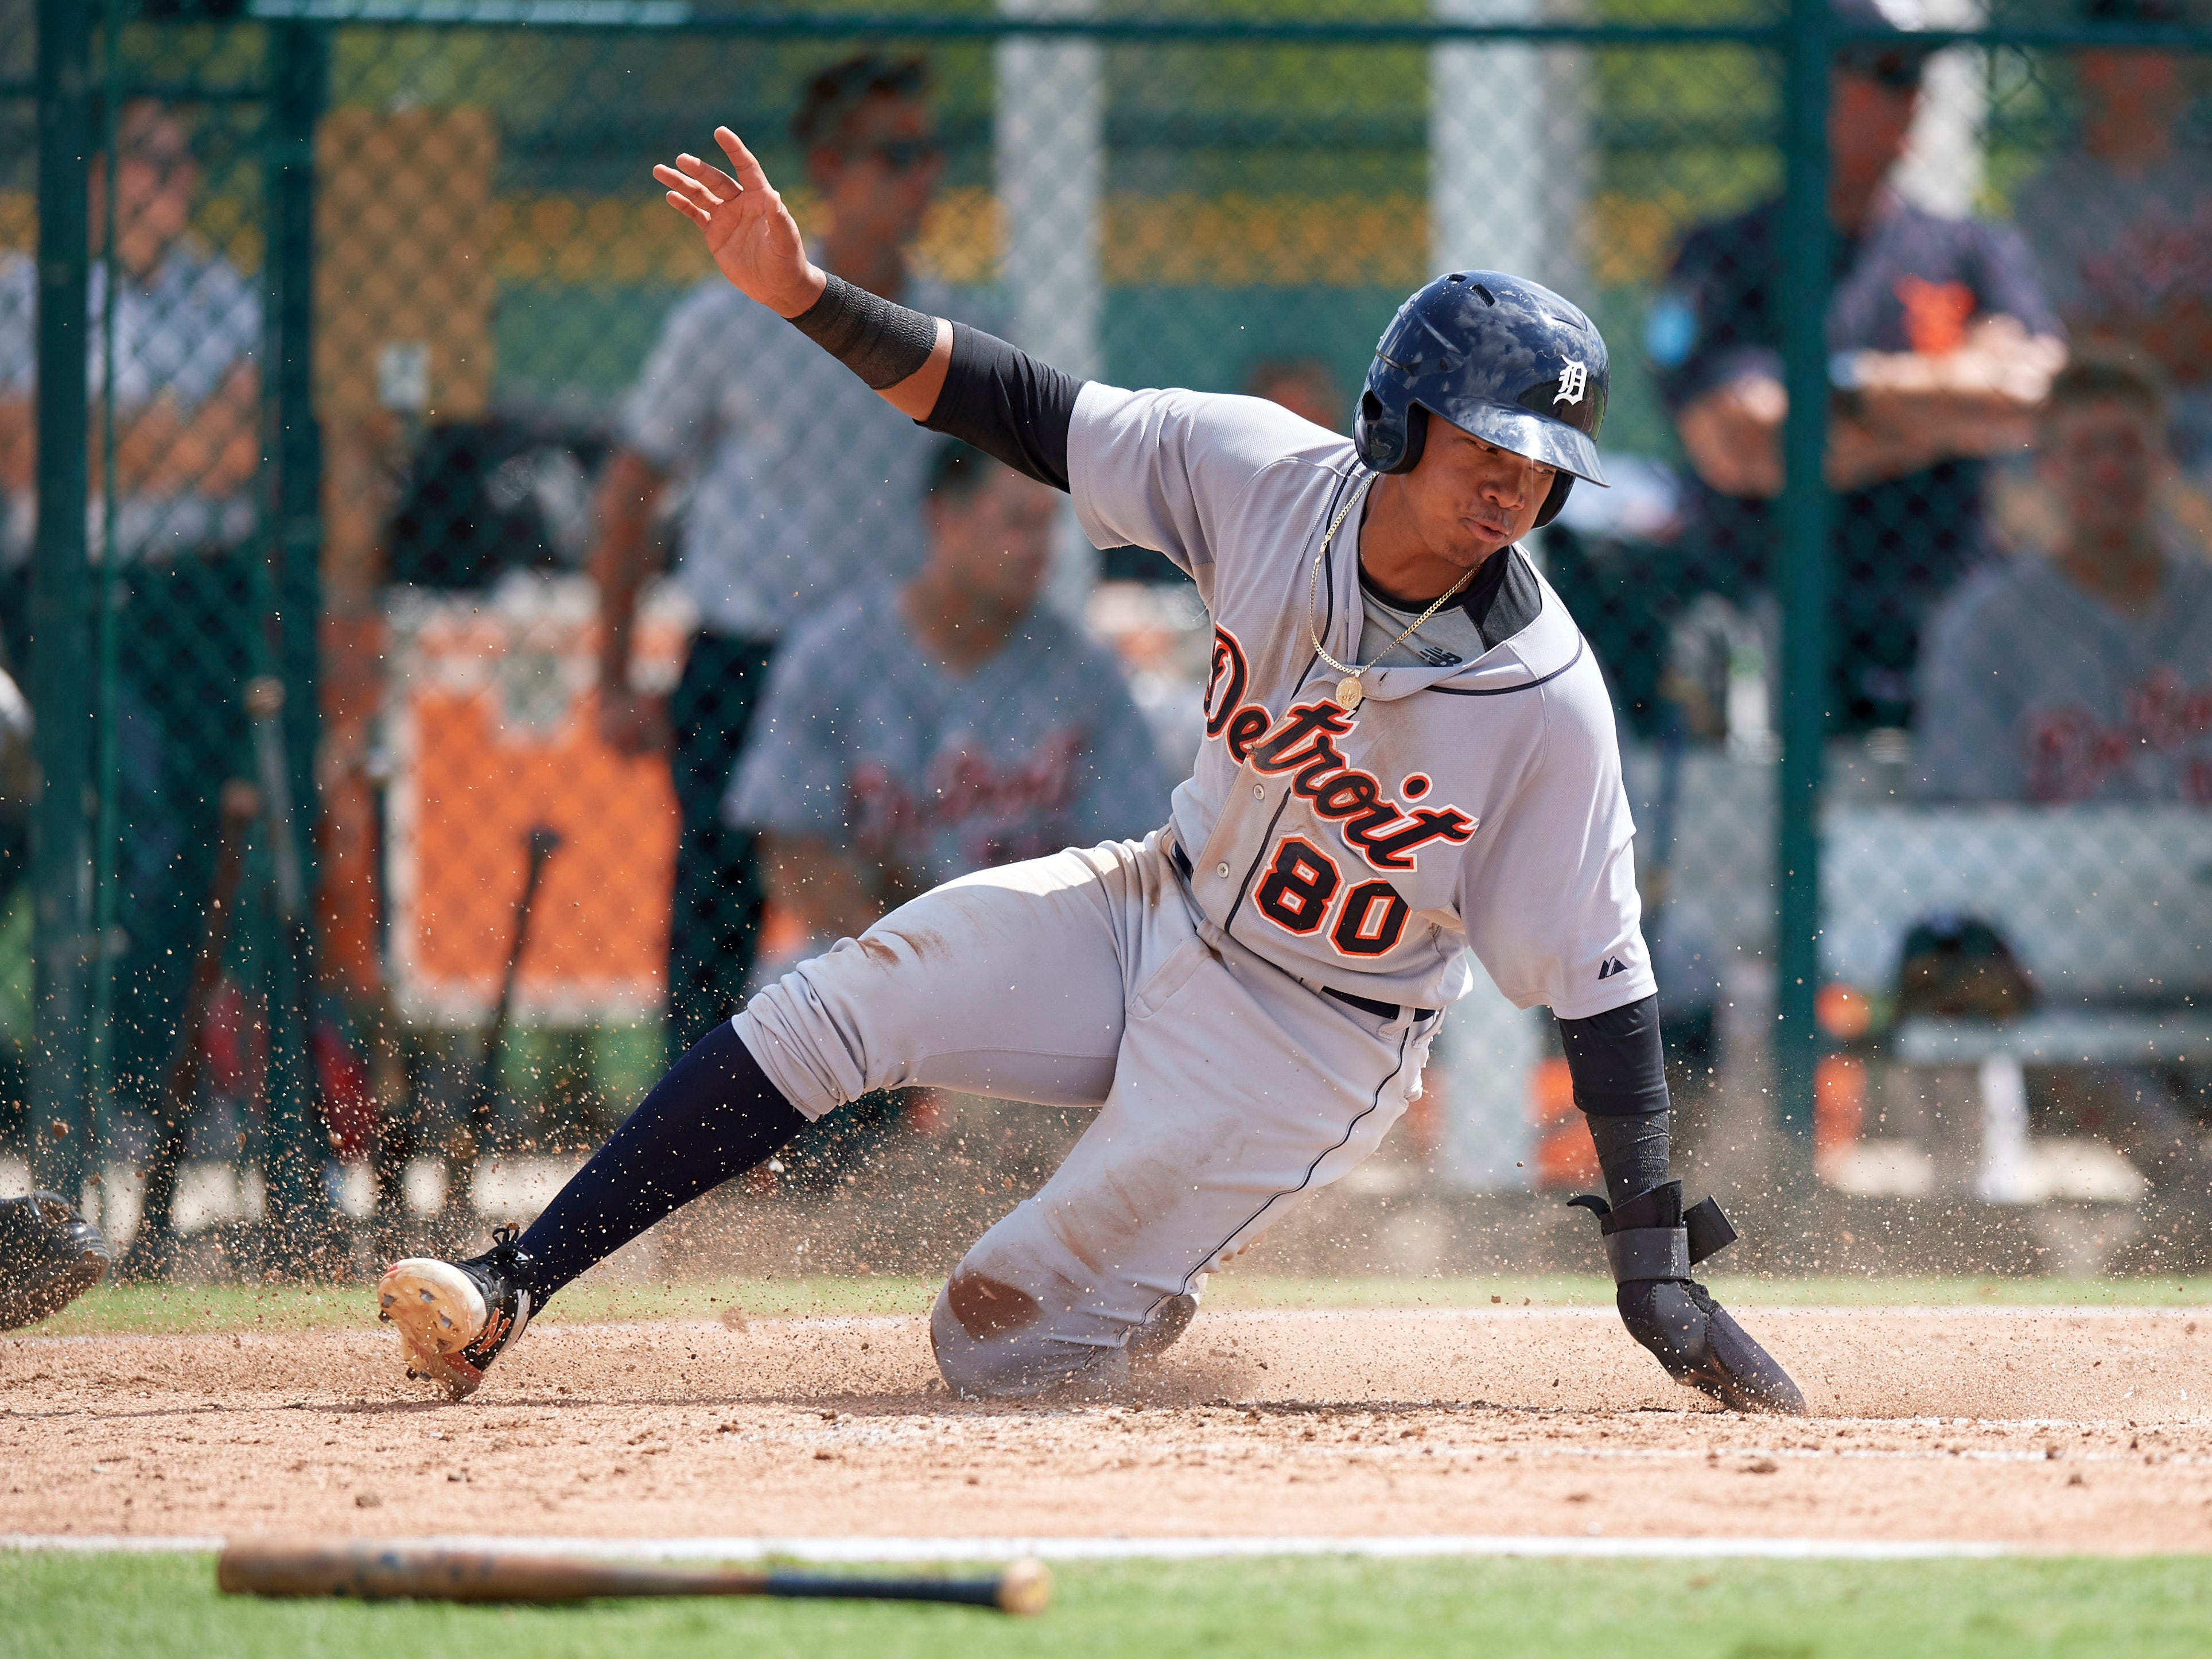 7. Wenceel Perez, SS, 19, 5-11, 170: The Tigers paid him royally three years ago to join their Comerica Park Corps. He could be Detroit-bound rapidly. He's a switch-hitter who, if 2019 goes as well as projected, would invite thoughts about how soon Perez will be your next Tigers starter. This is one of the team's thoroughbred talents. Have fun watching him in 2019 – and beyond.